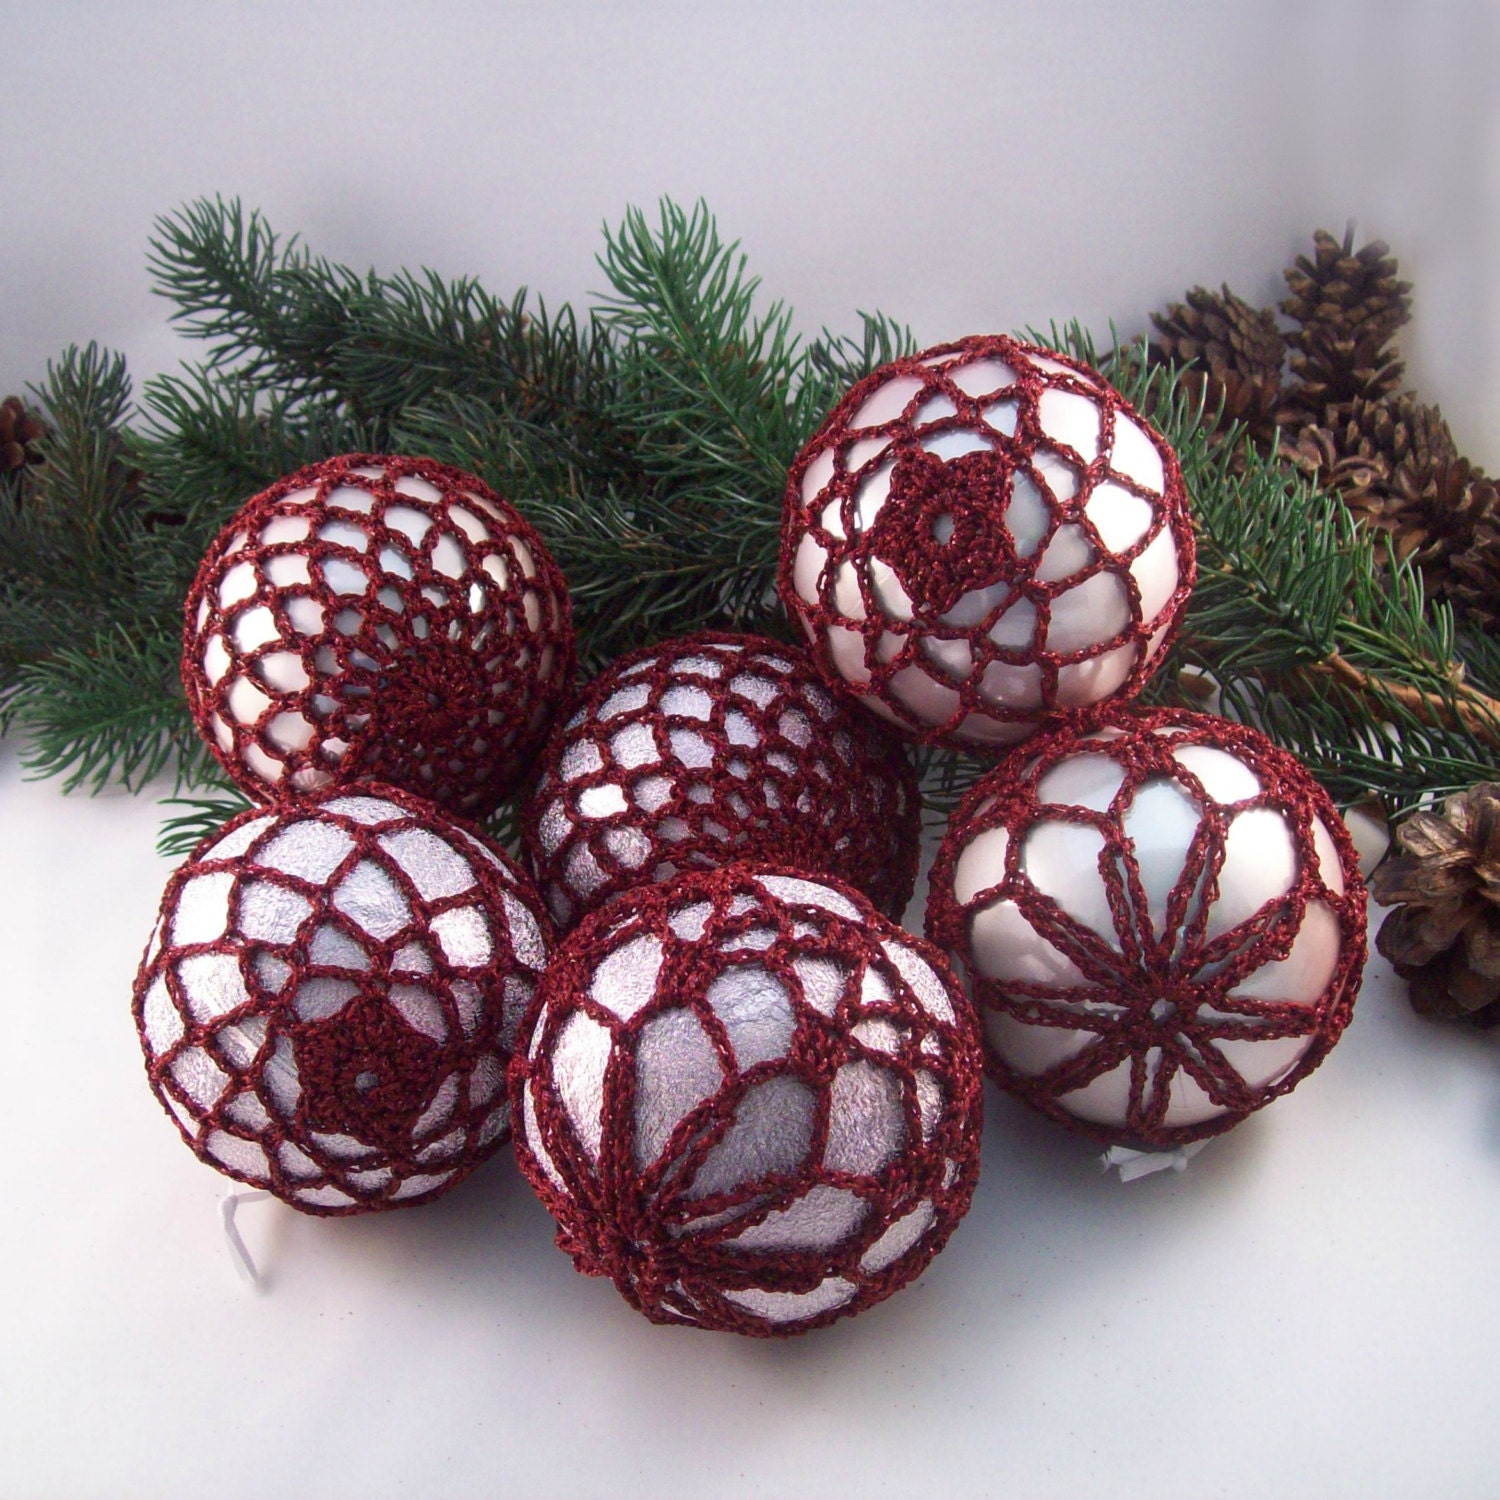 Dark Red  Blush Baubles Christmas baubles Tree decorations Wedding decorations Crochet baubles Christmas ornaments Holiday baubles